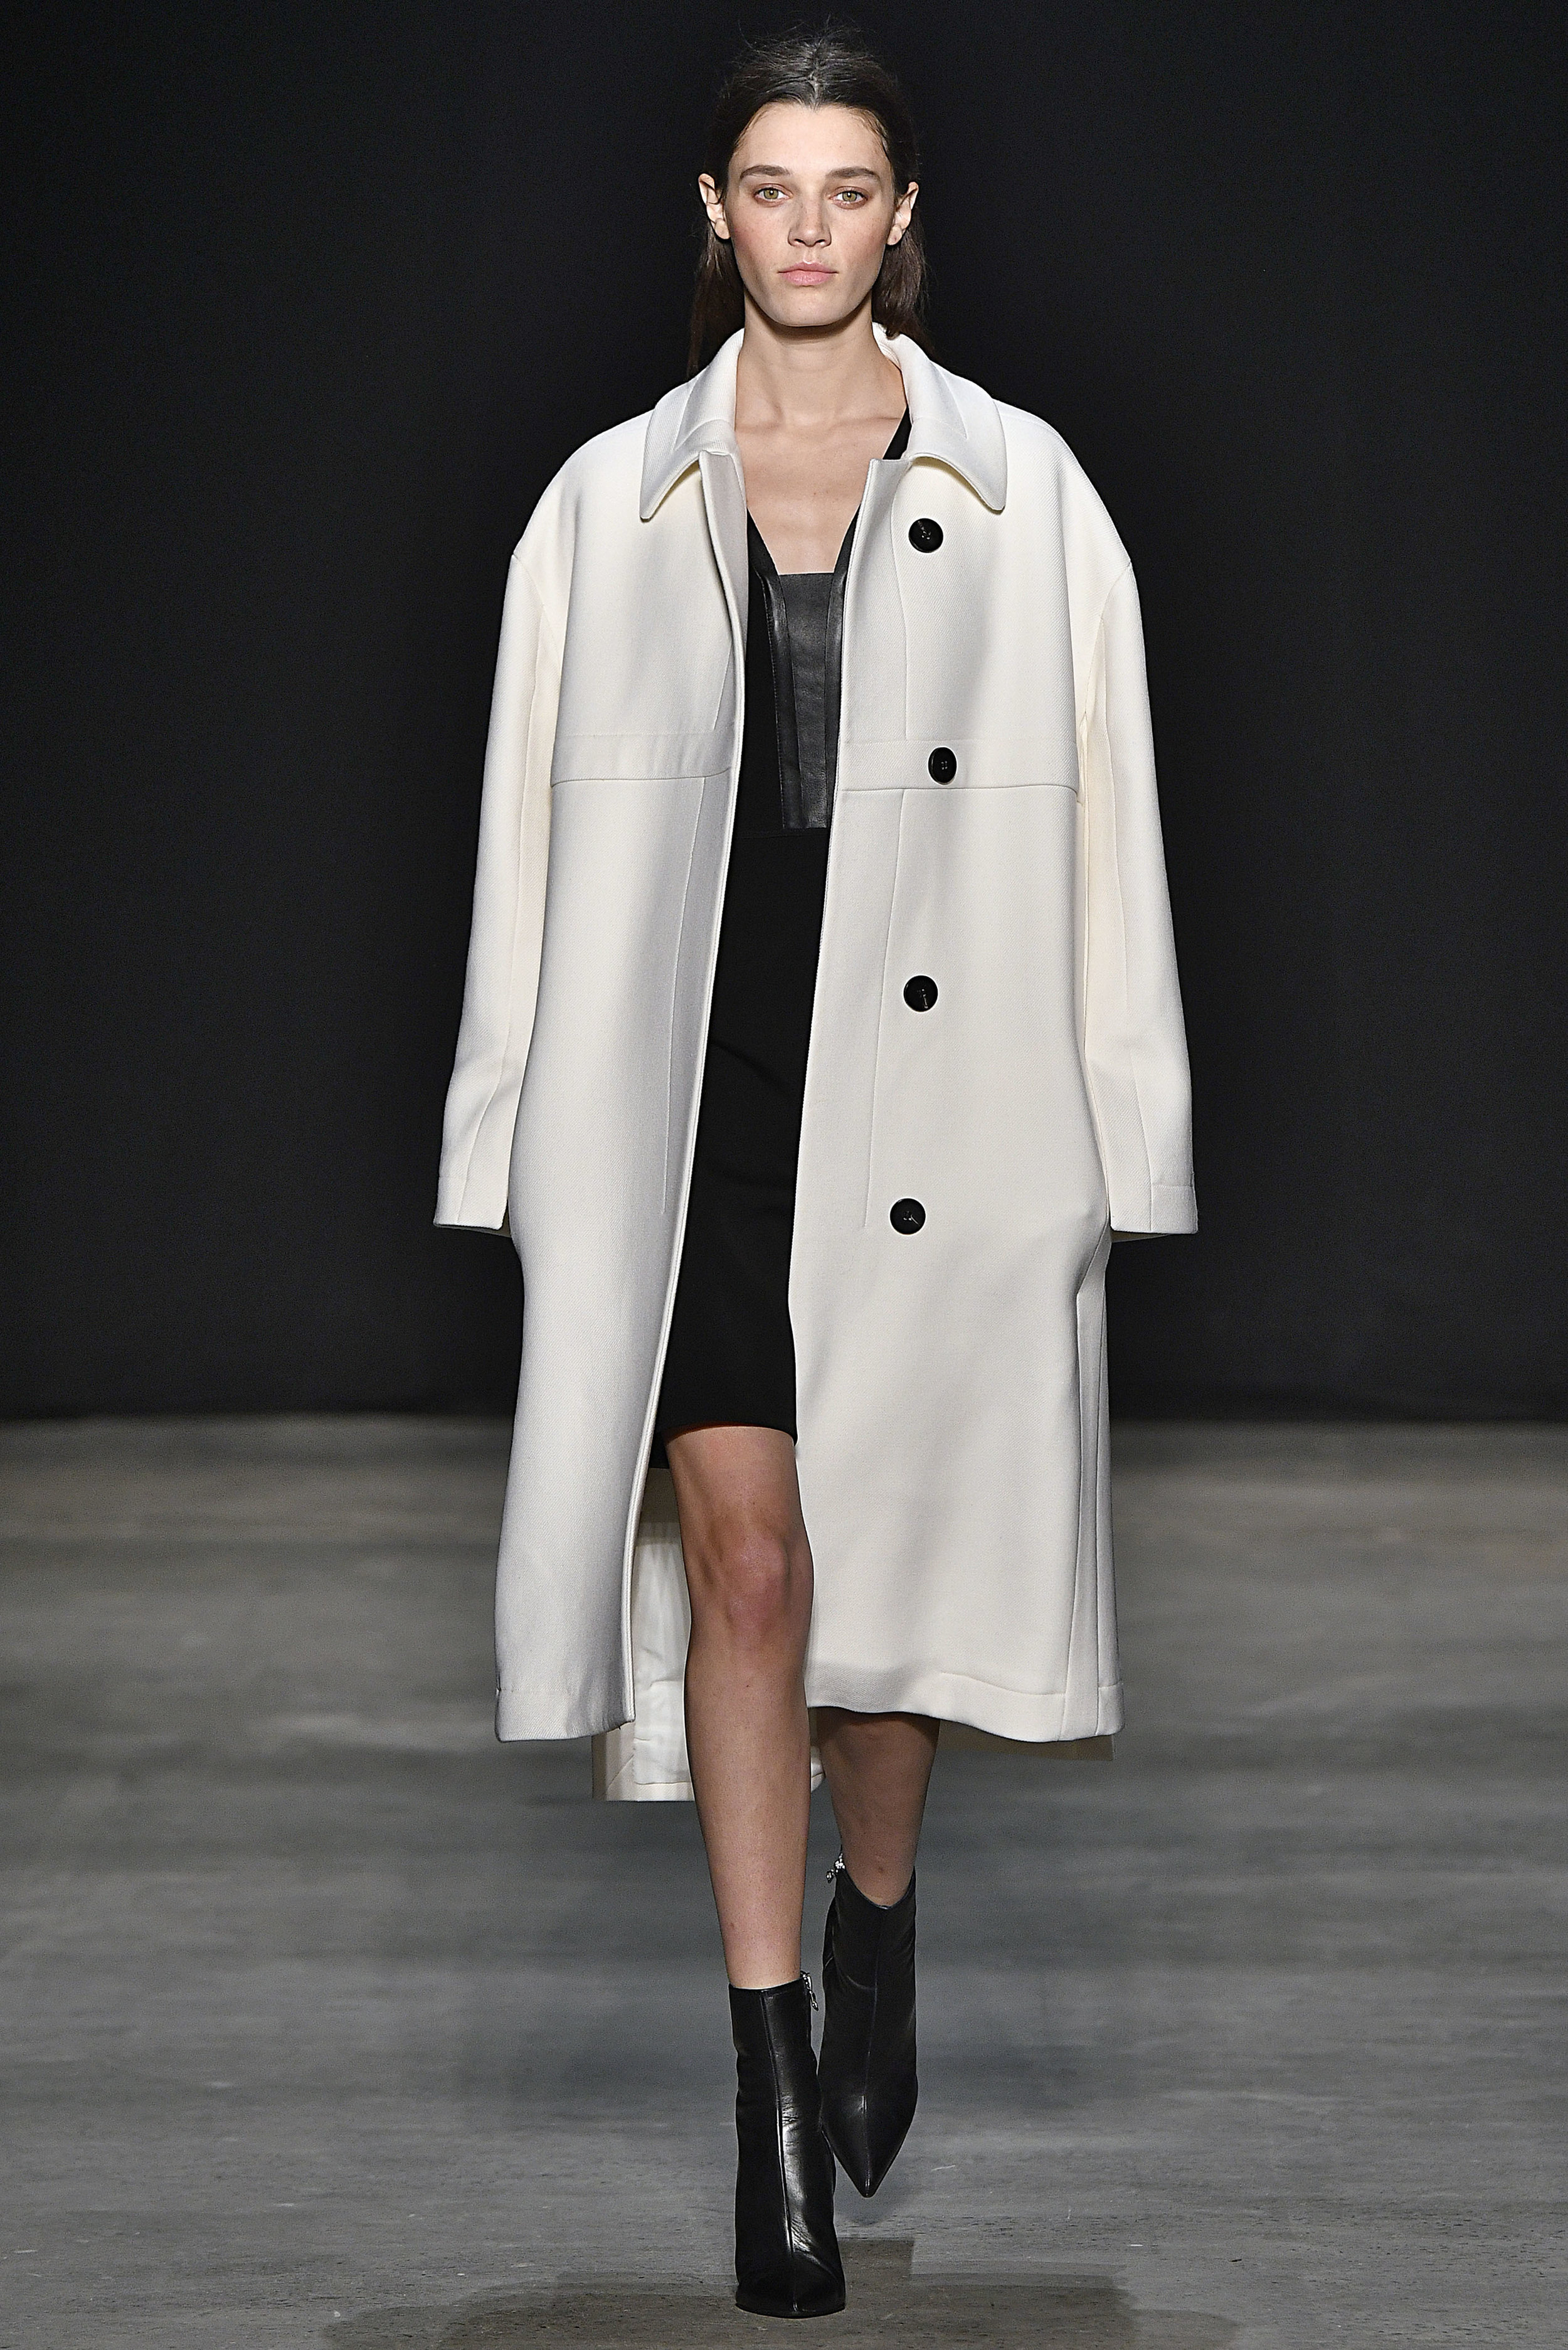 Narciso Rodriguez Fall 2017 collection. Ivory wool twill coat with black leather/wool barathea dress.